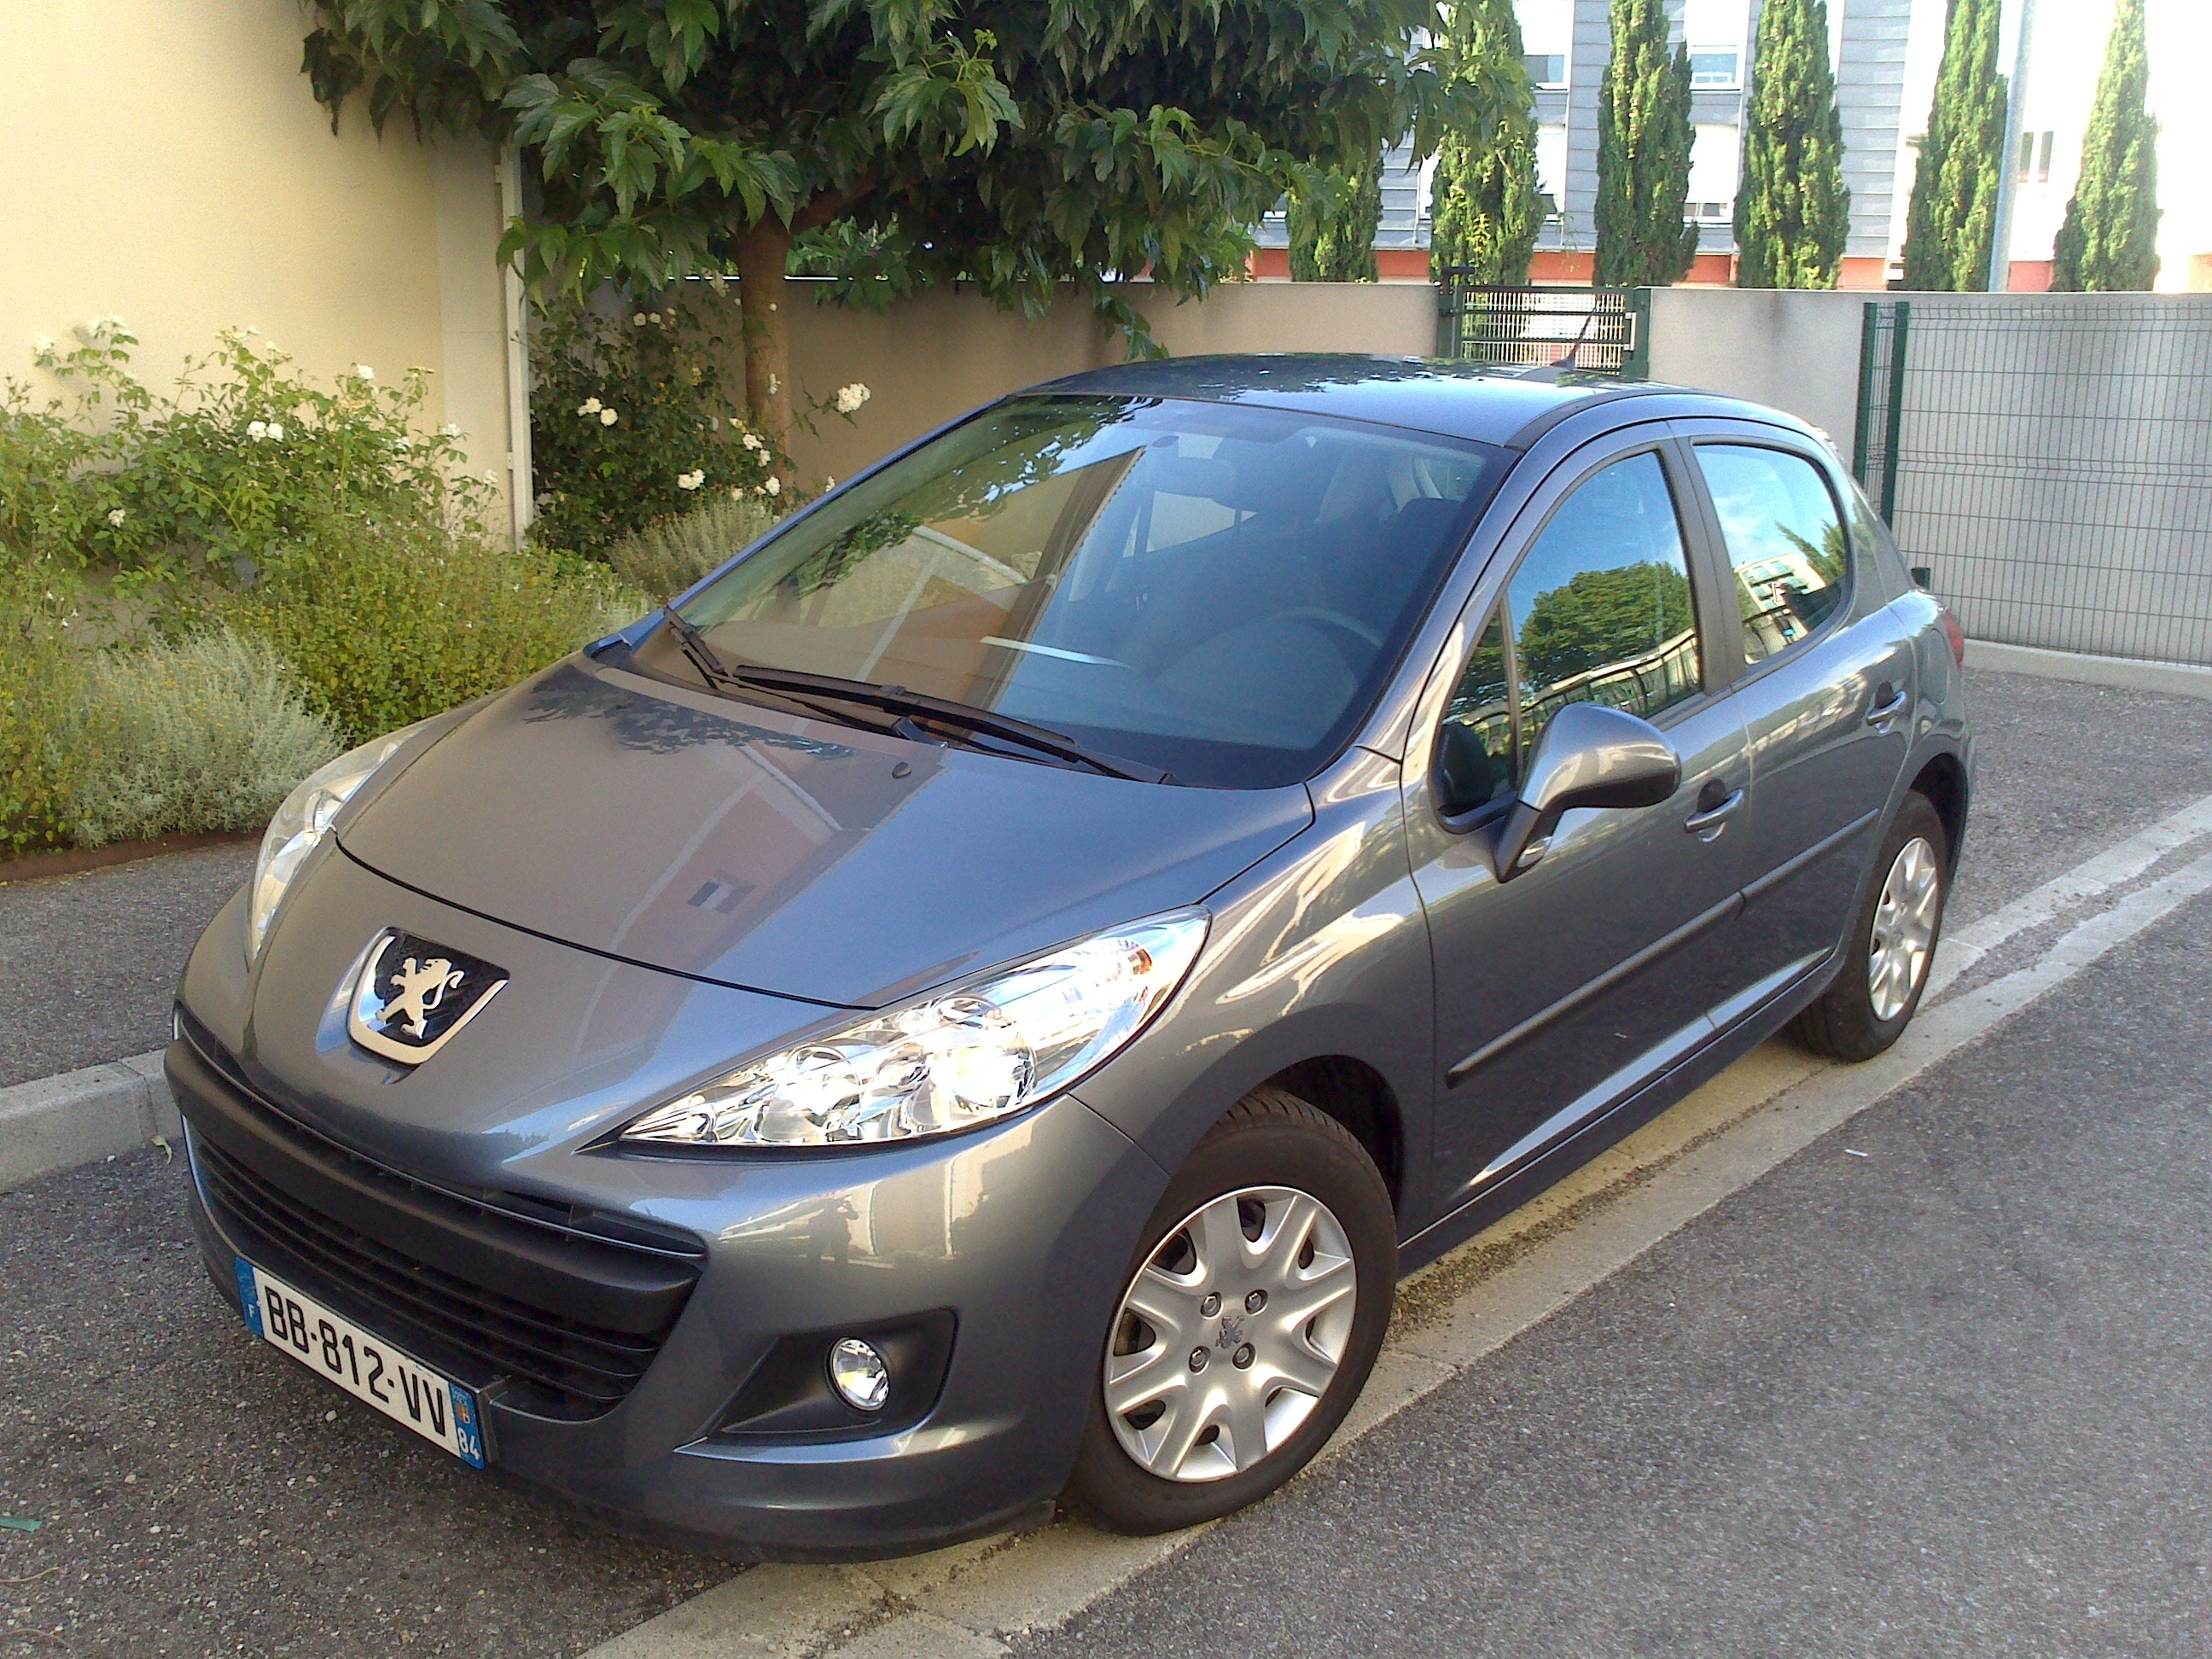 Peugeot 207 1.4VTI 95 Active, 2010, Essence